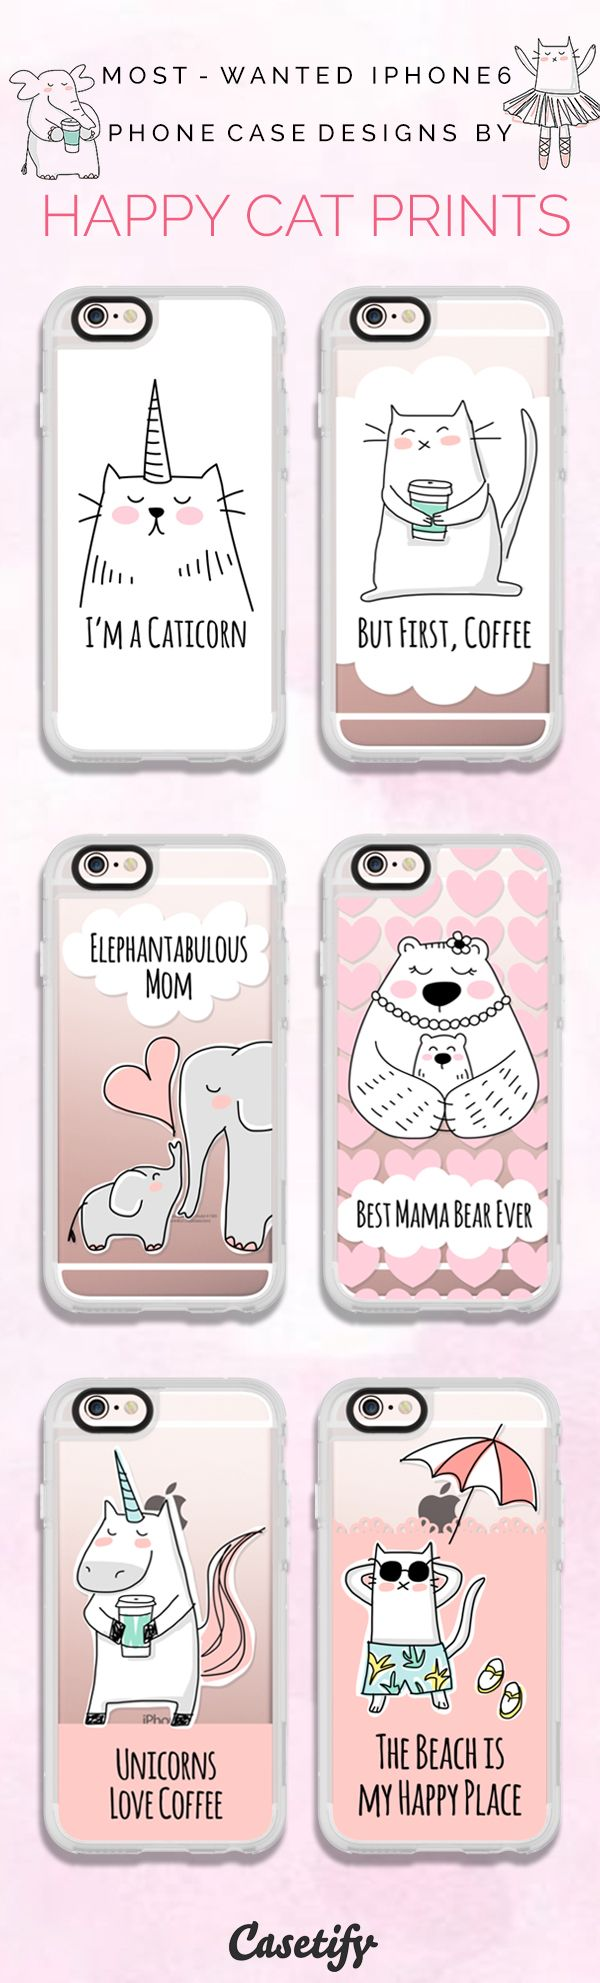 Pinterest el cat 225 logo global de ideas - Top 6 Iphone 6 Protective Phone Case Designs By Happy Cat Prints Click Through To